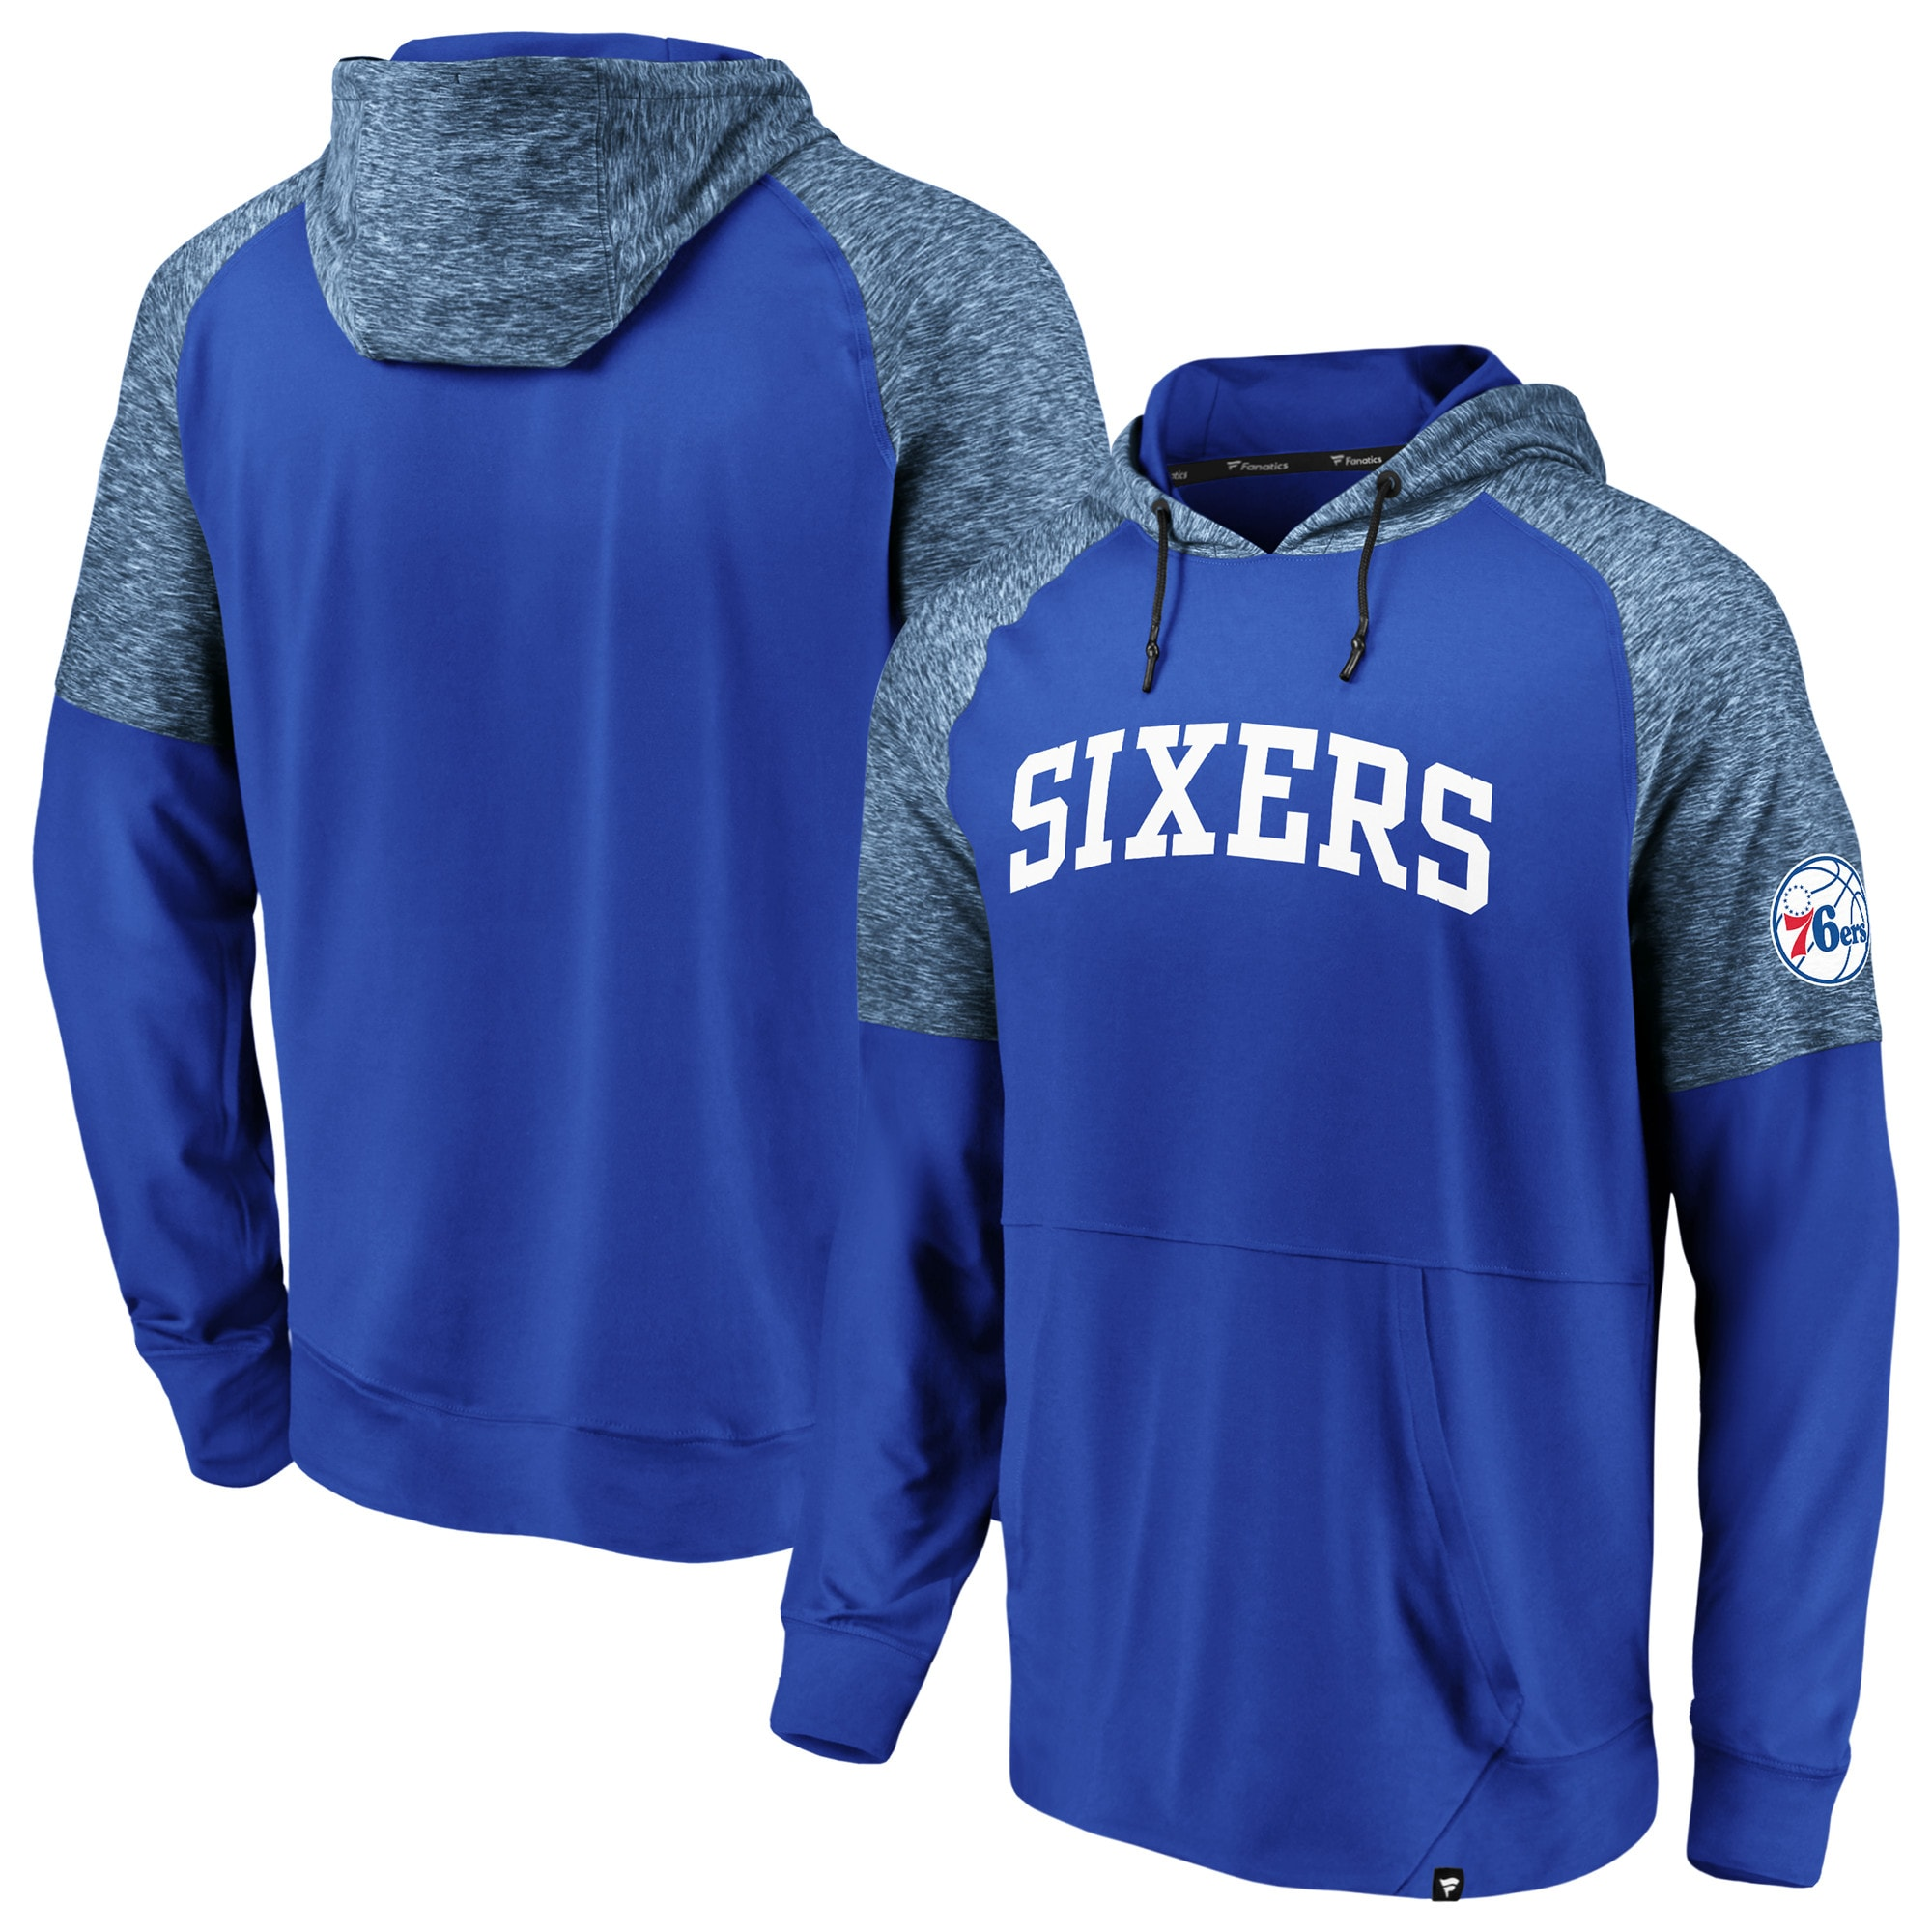 Philadelphia 76ers Fanatics Branded Made to Move Static Performance Raglan Pullover Hoodie - Royal